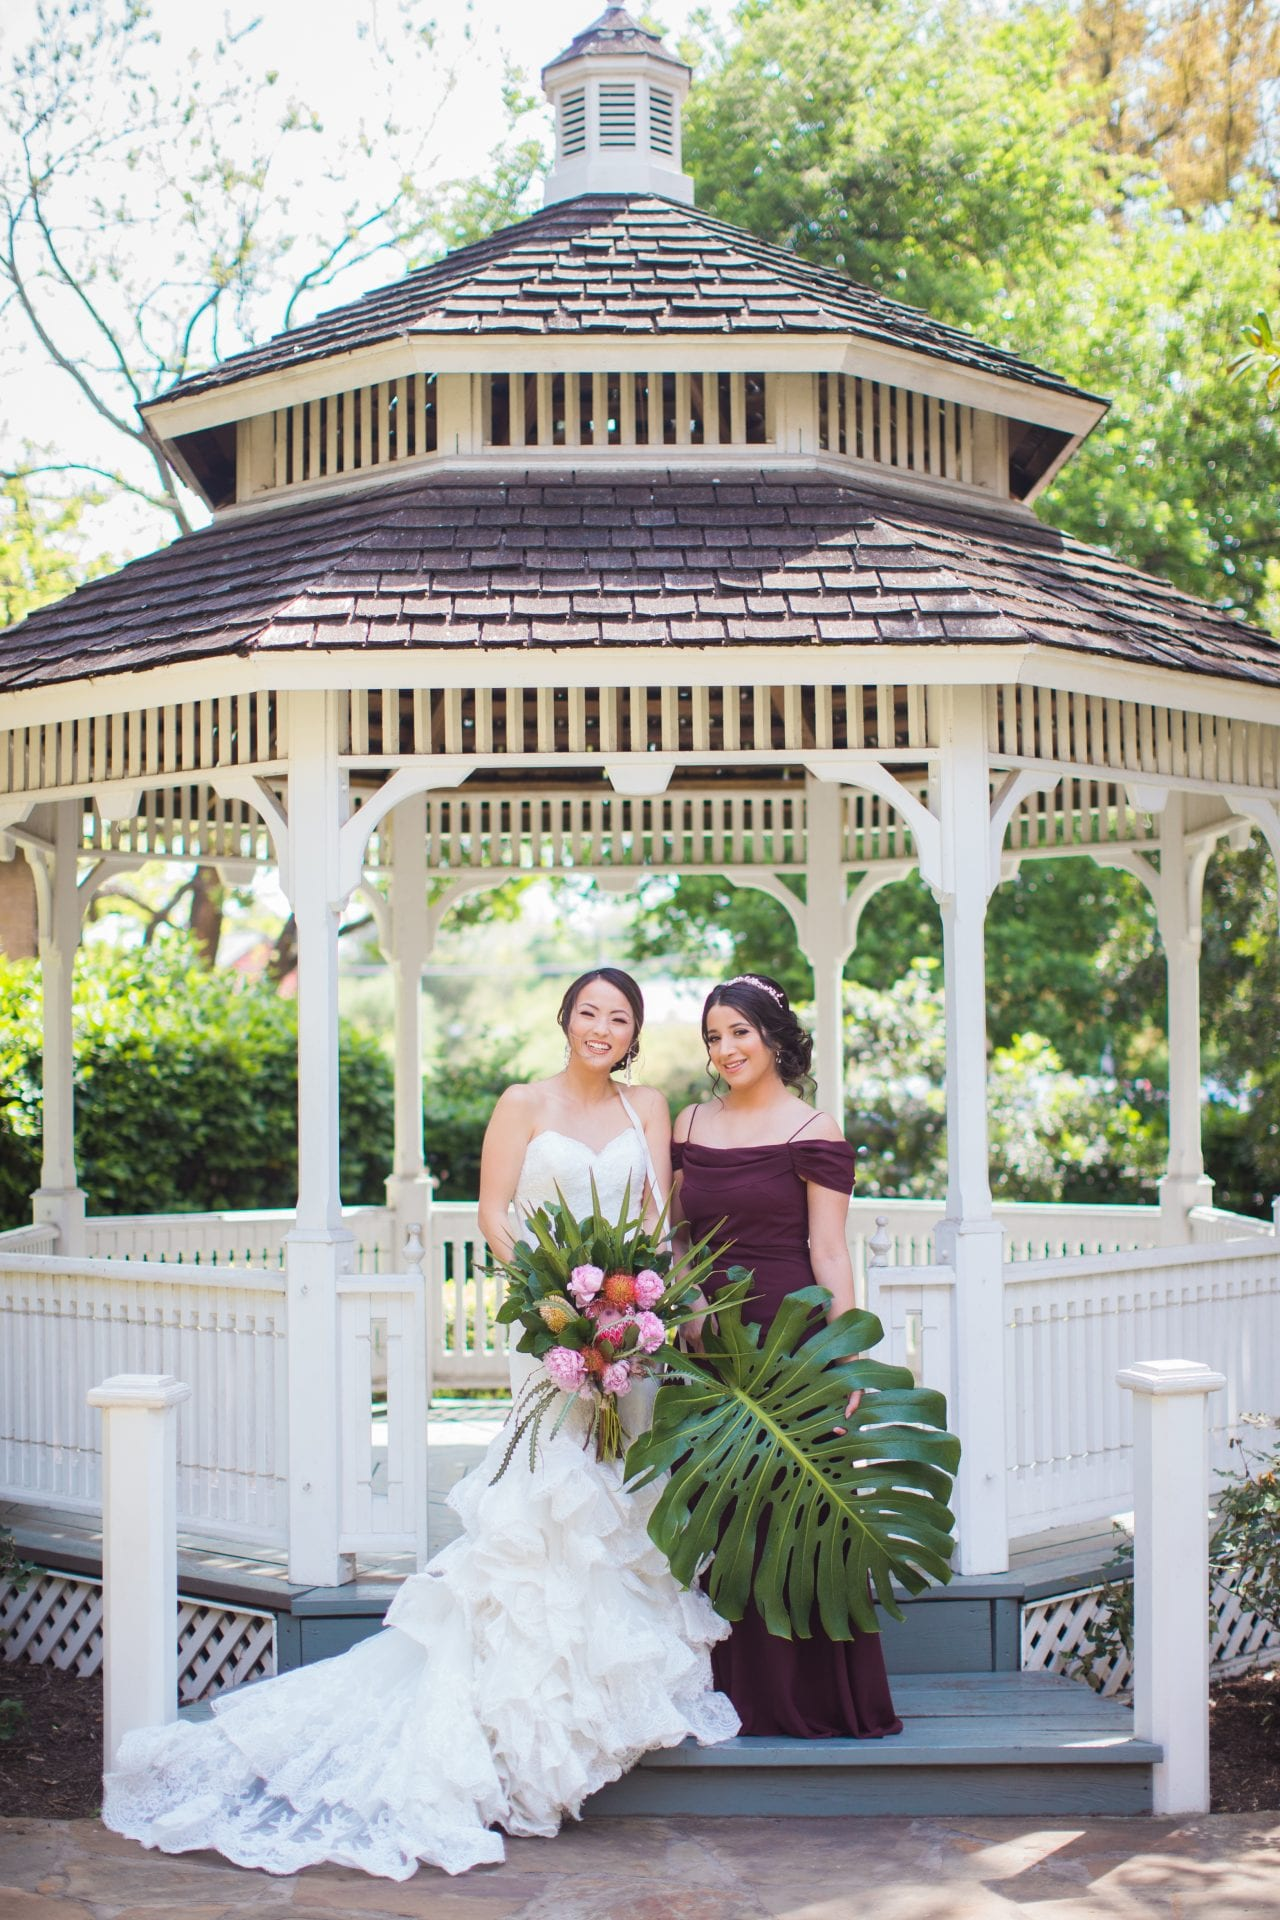 Marriott Plaza Styled Shoot bride and bridesmaid